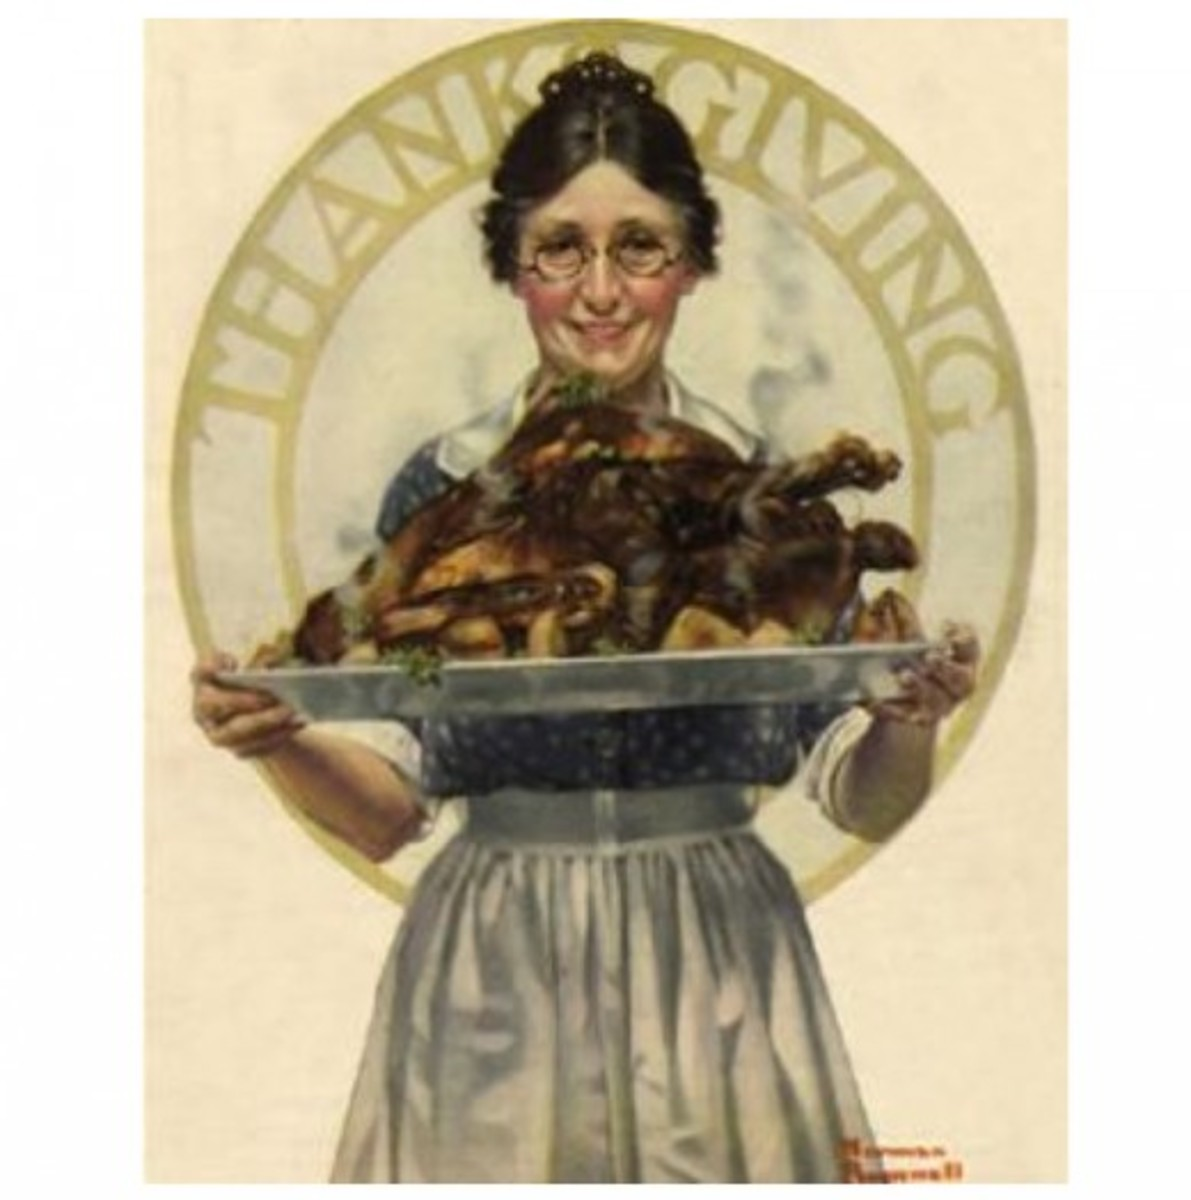 Hostess Serving Turkey on a Platter